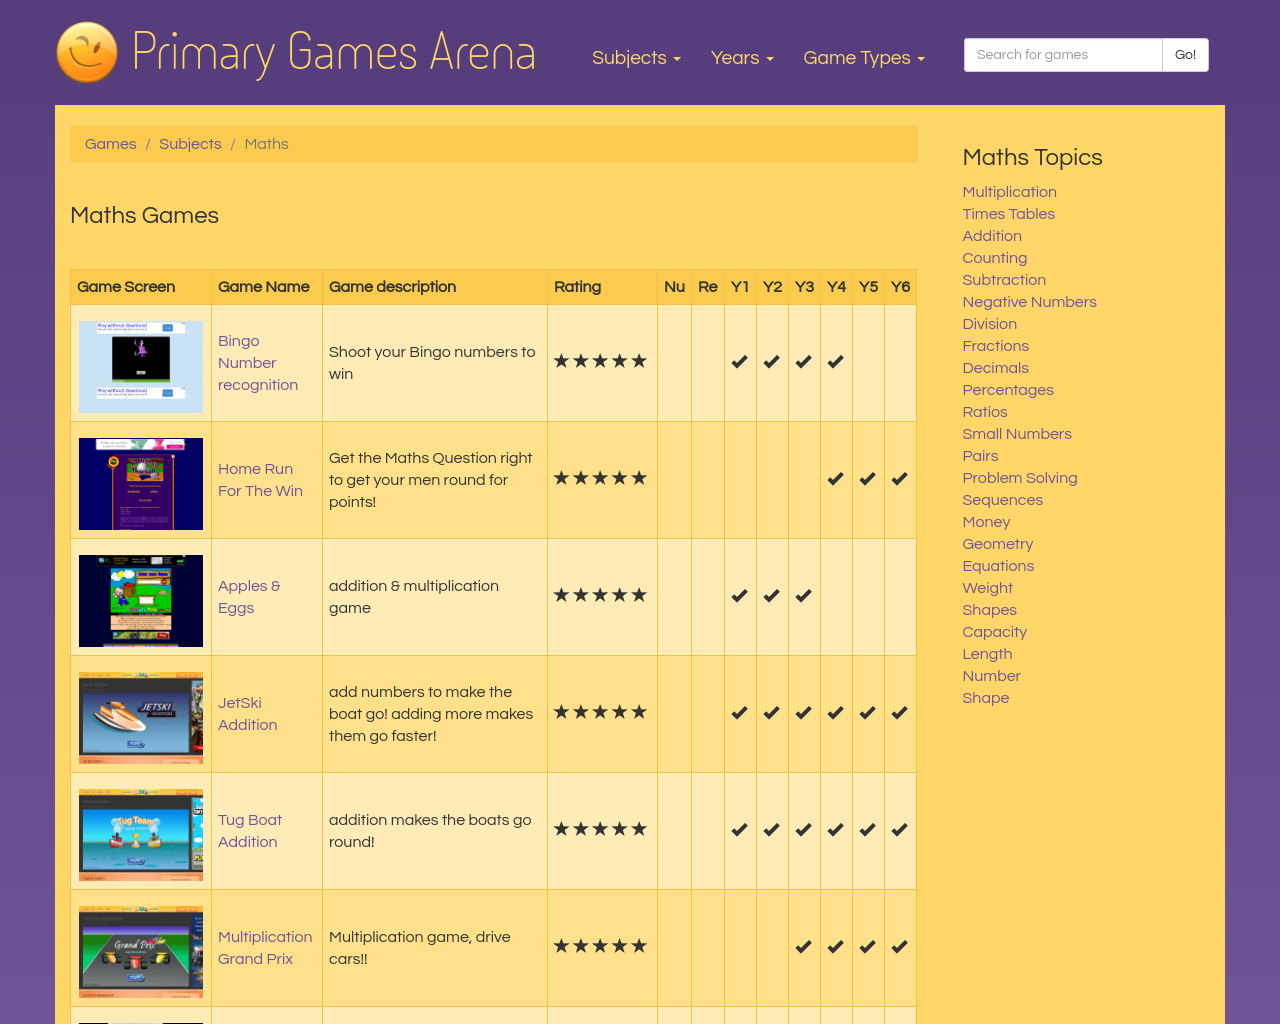 Primary games arena - Maths